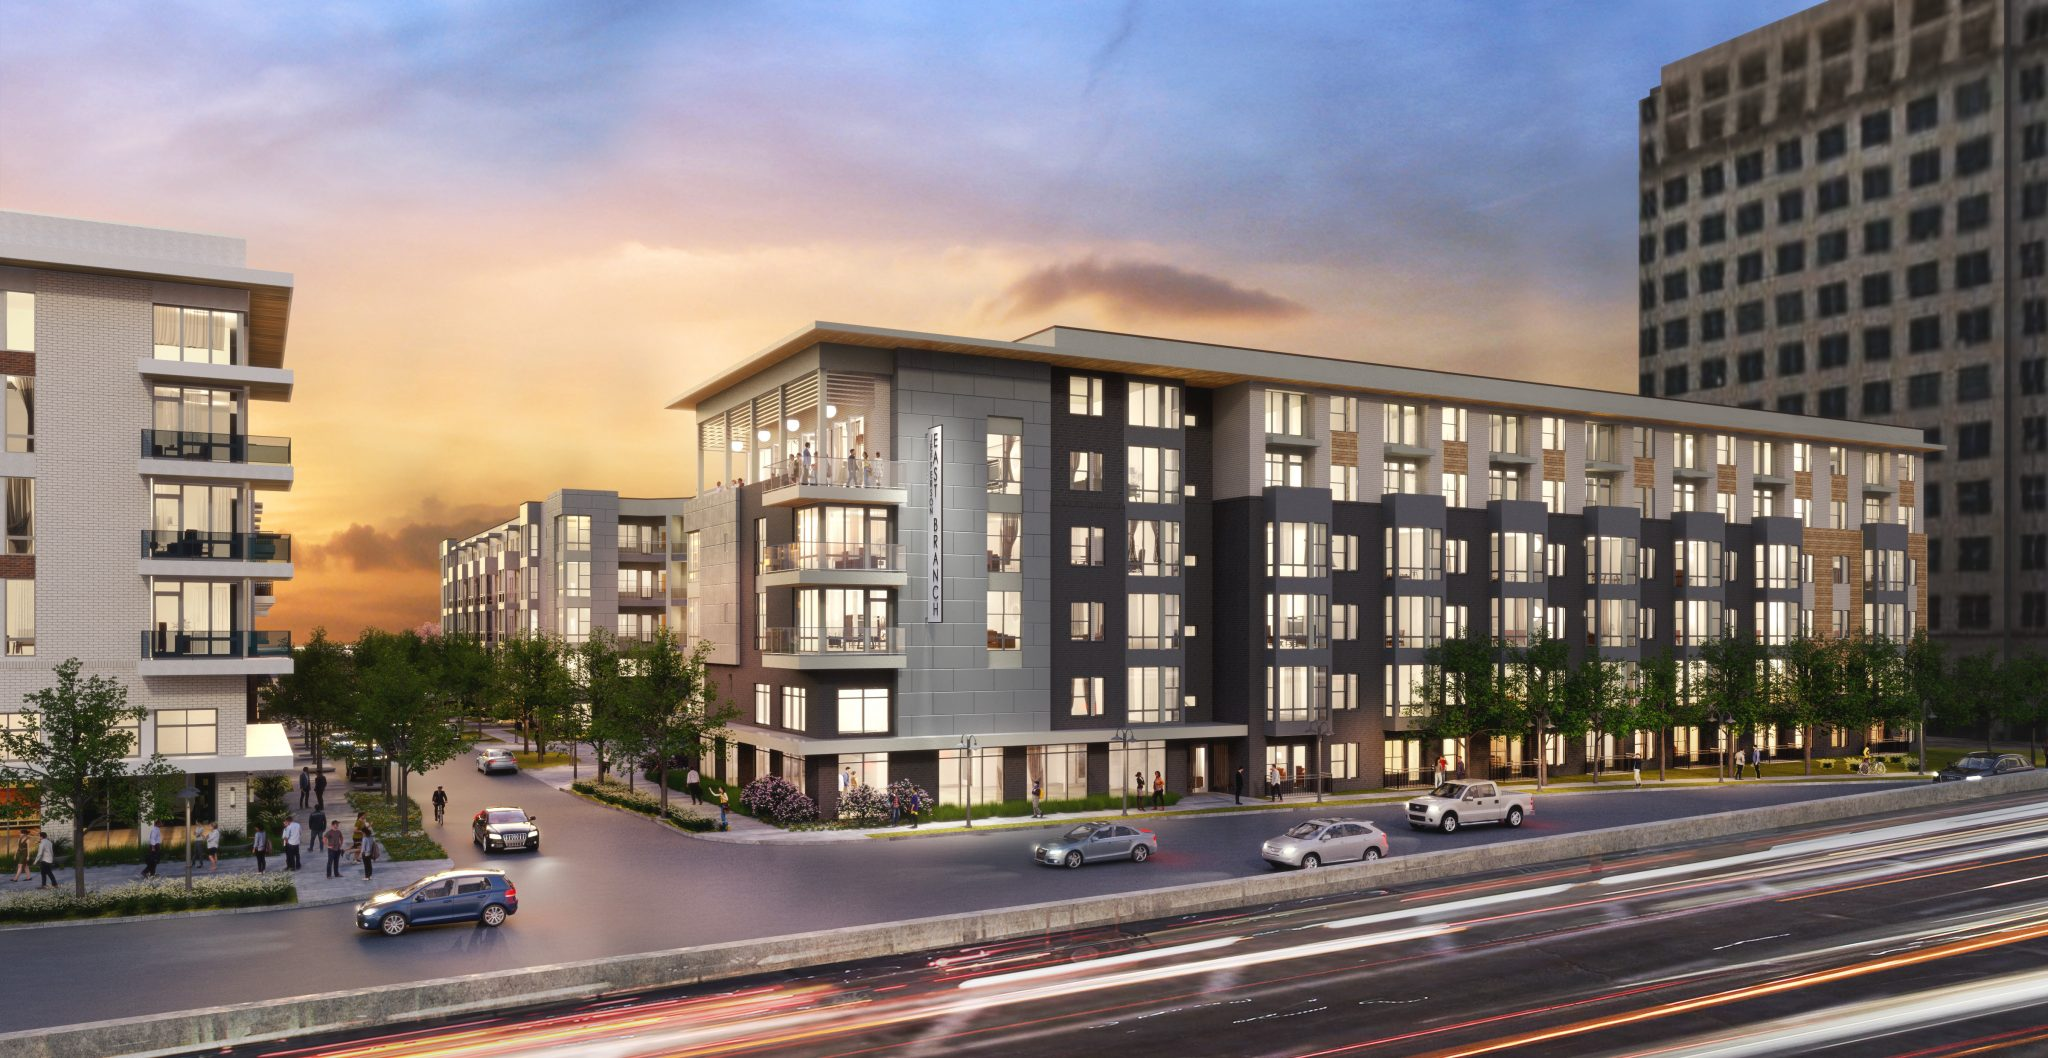 The Jefferson East Branch: a proposed 390-unit community in the north Dallas suburb of Farmers Branch. Source: REJournals